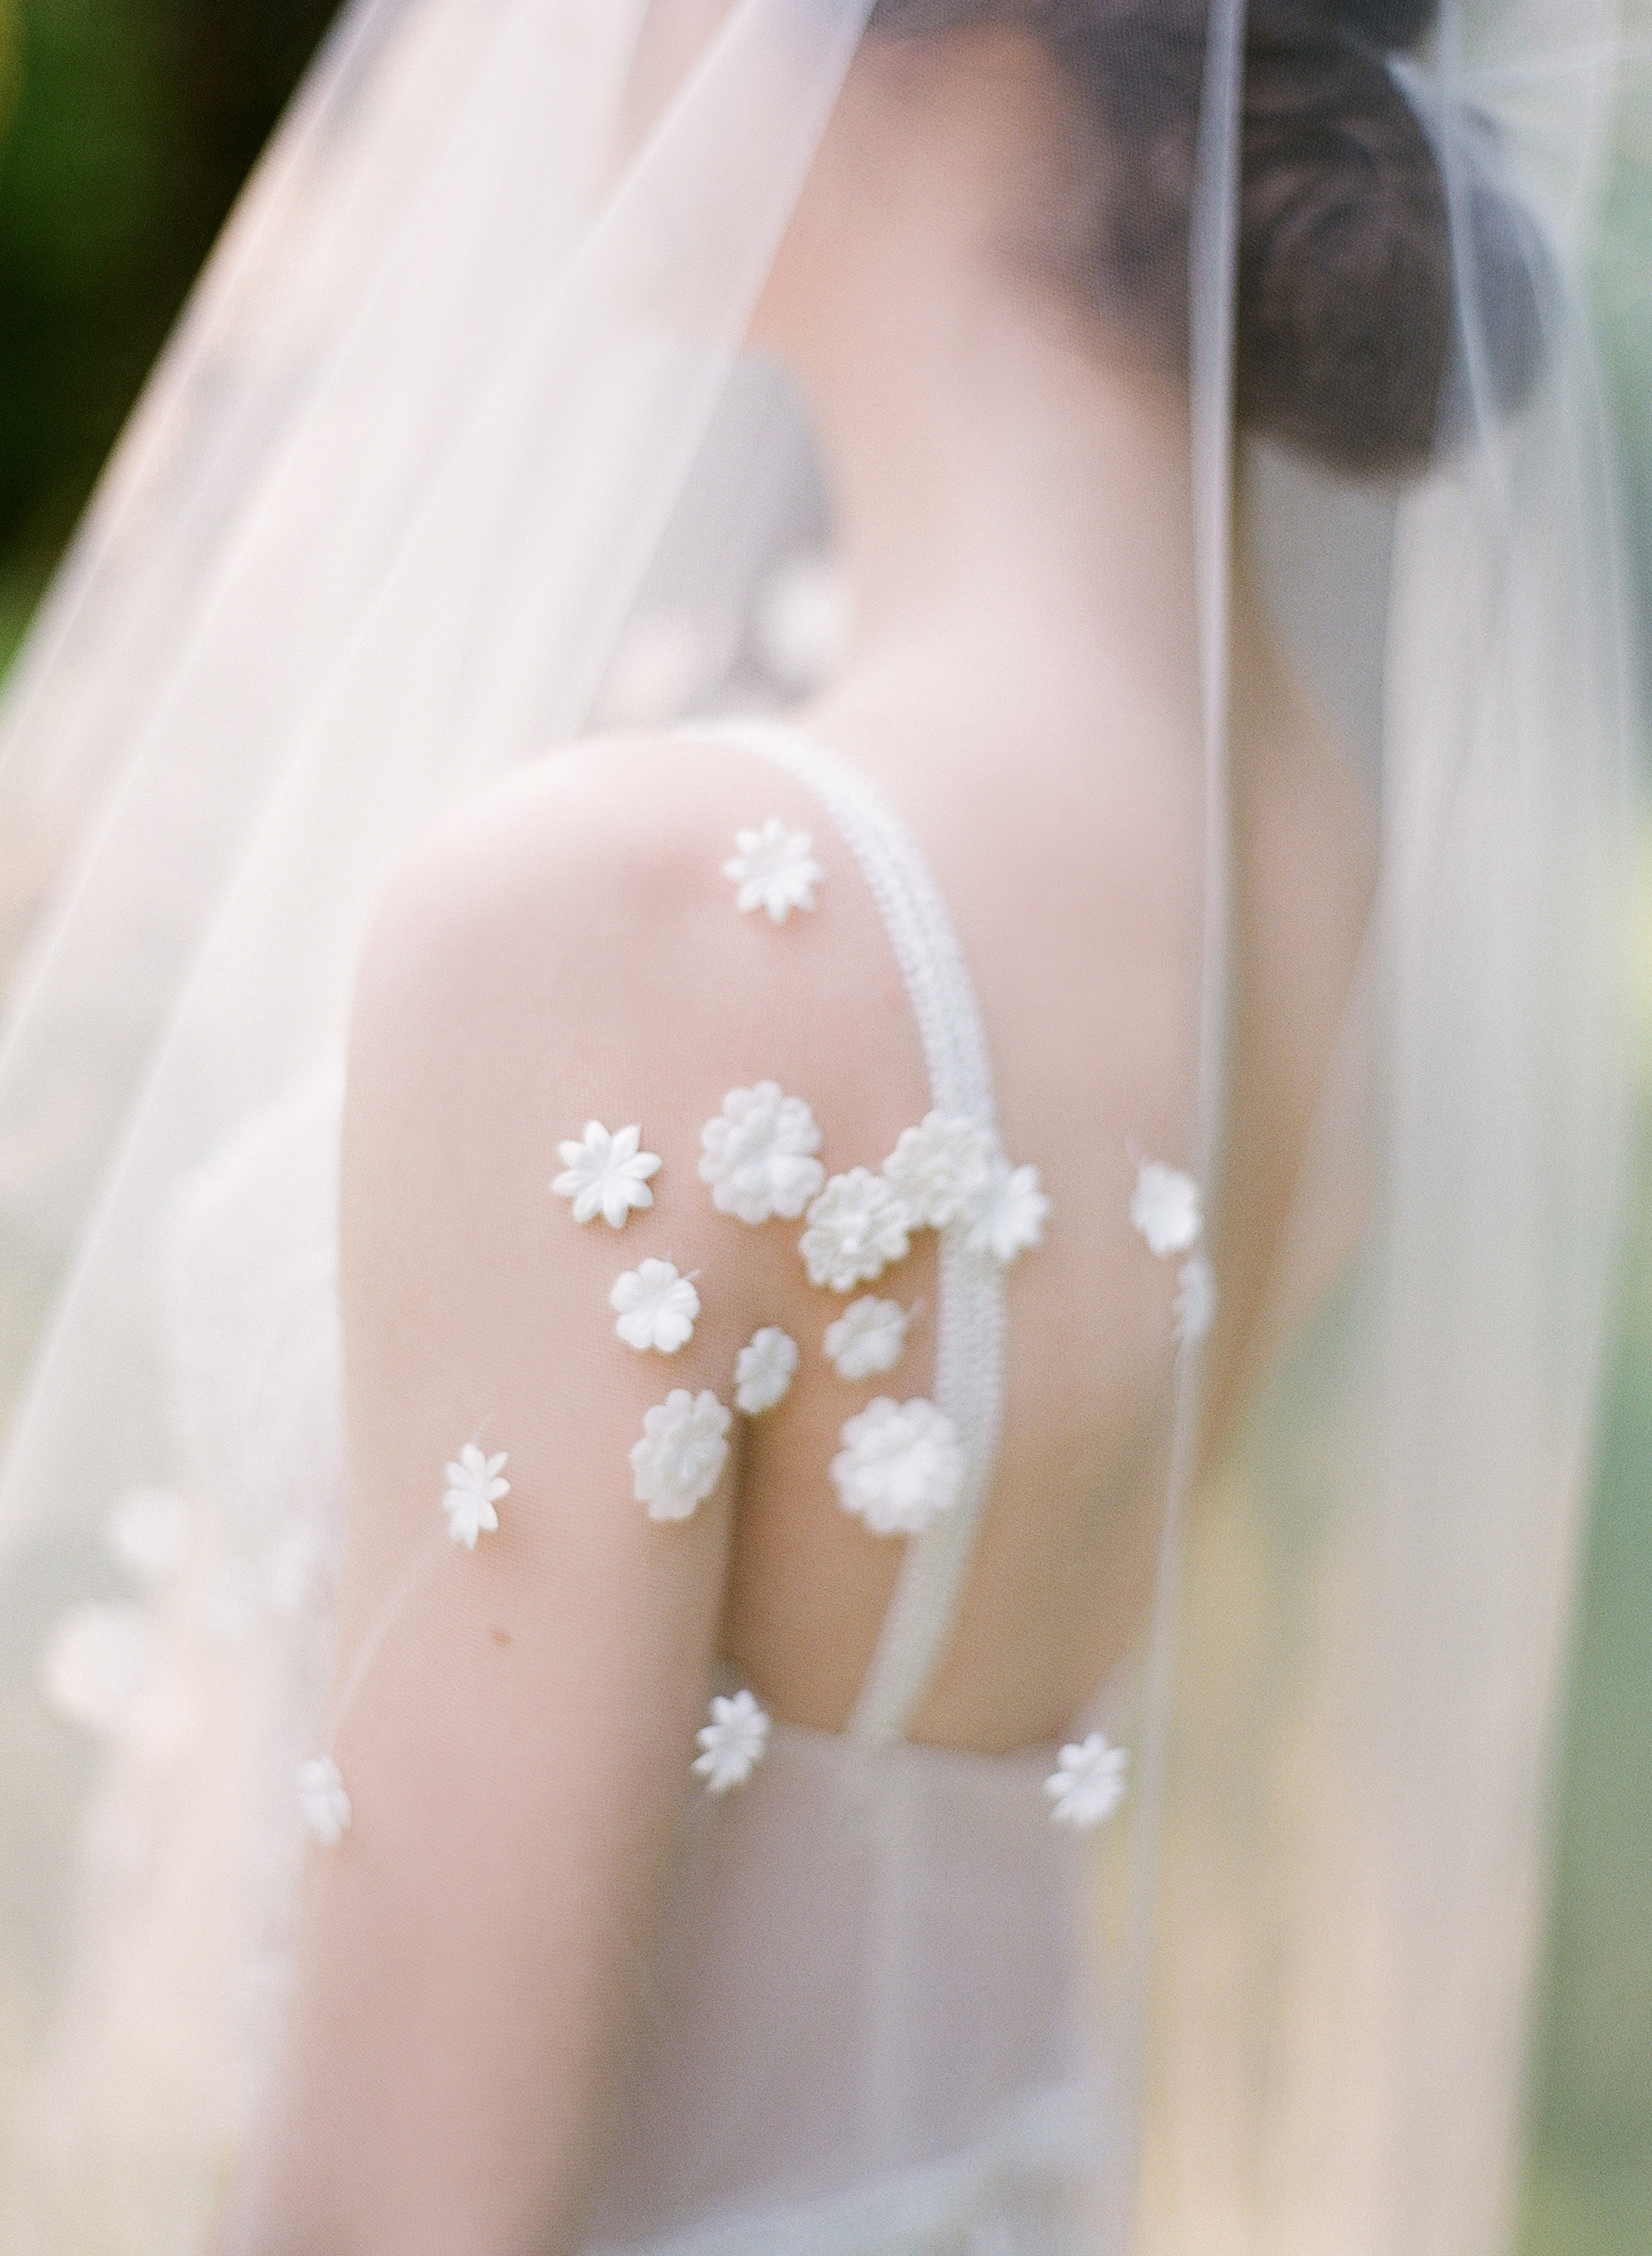 a491c7f7f0fb6 Nontraditional Wedding Veils for the Fashion-Forward Bride | Martha ...